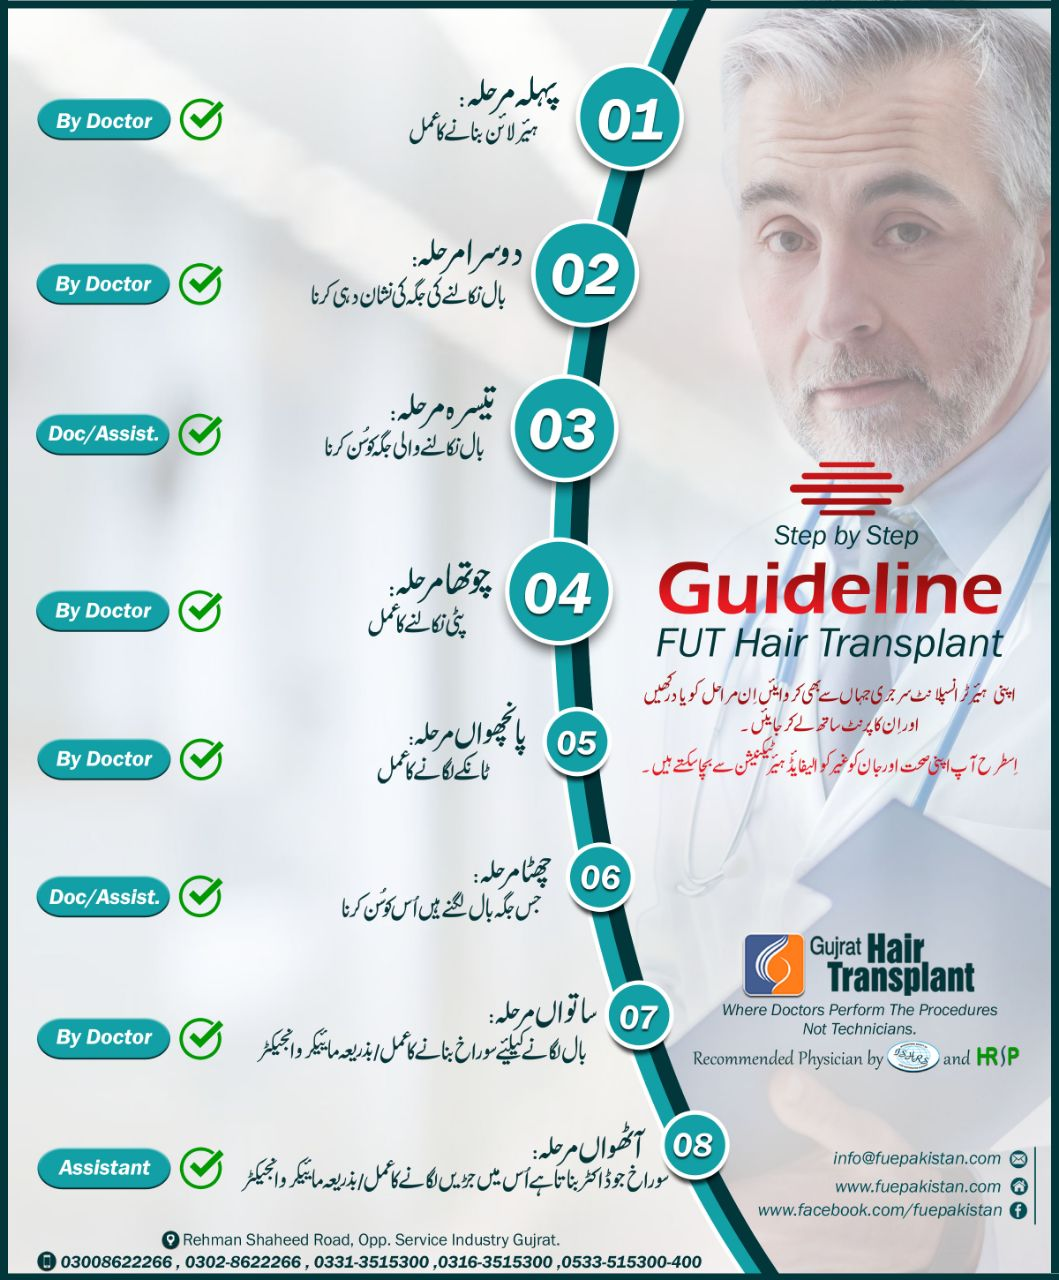 What to expect after a hair transplant: the timeline guide.